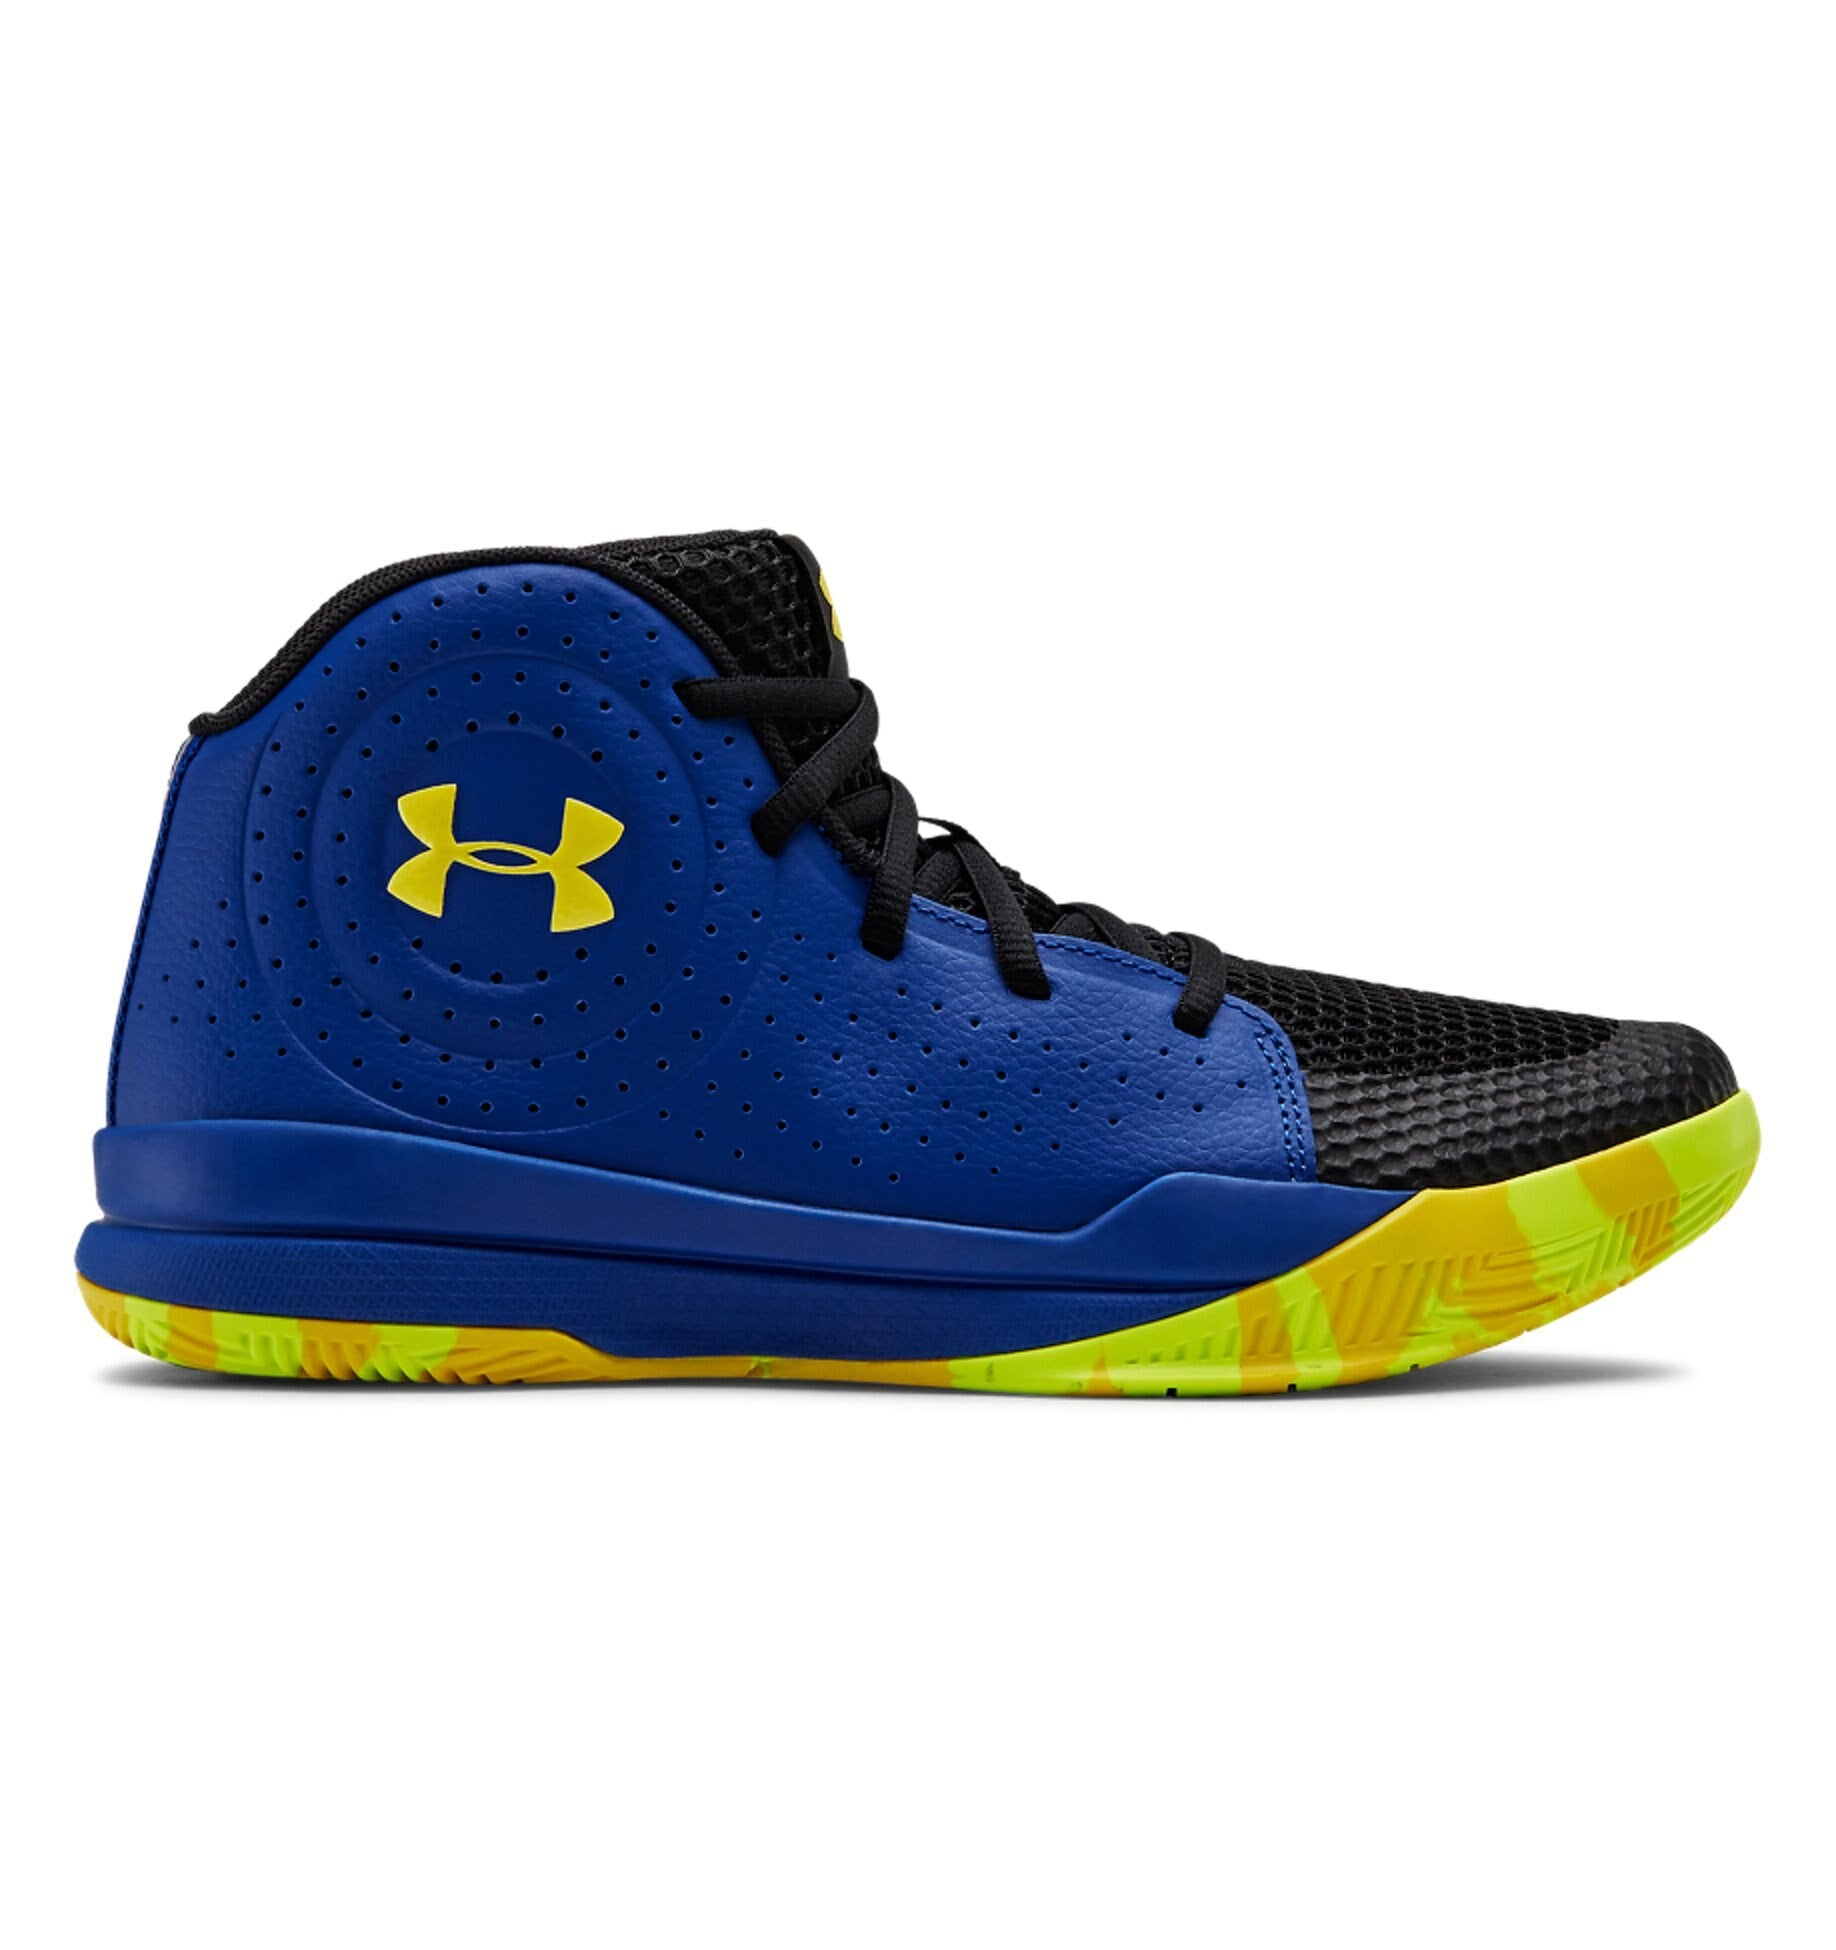 Under Armour Junior PS Jet 3022122-402 Basketball Shoes